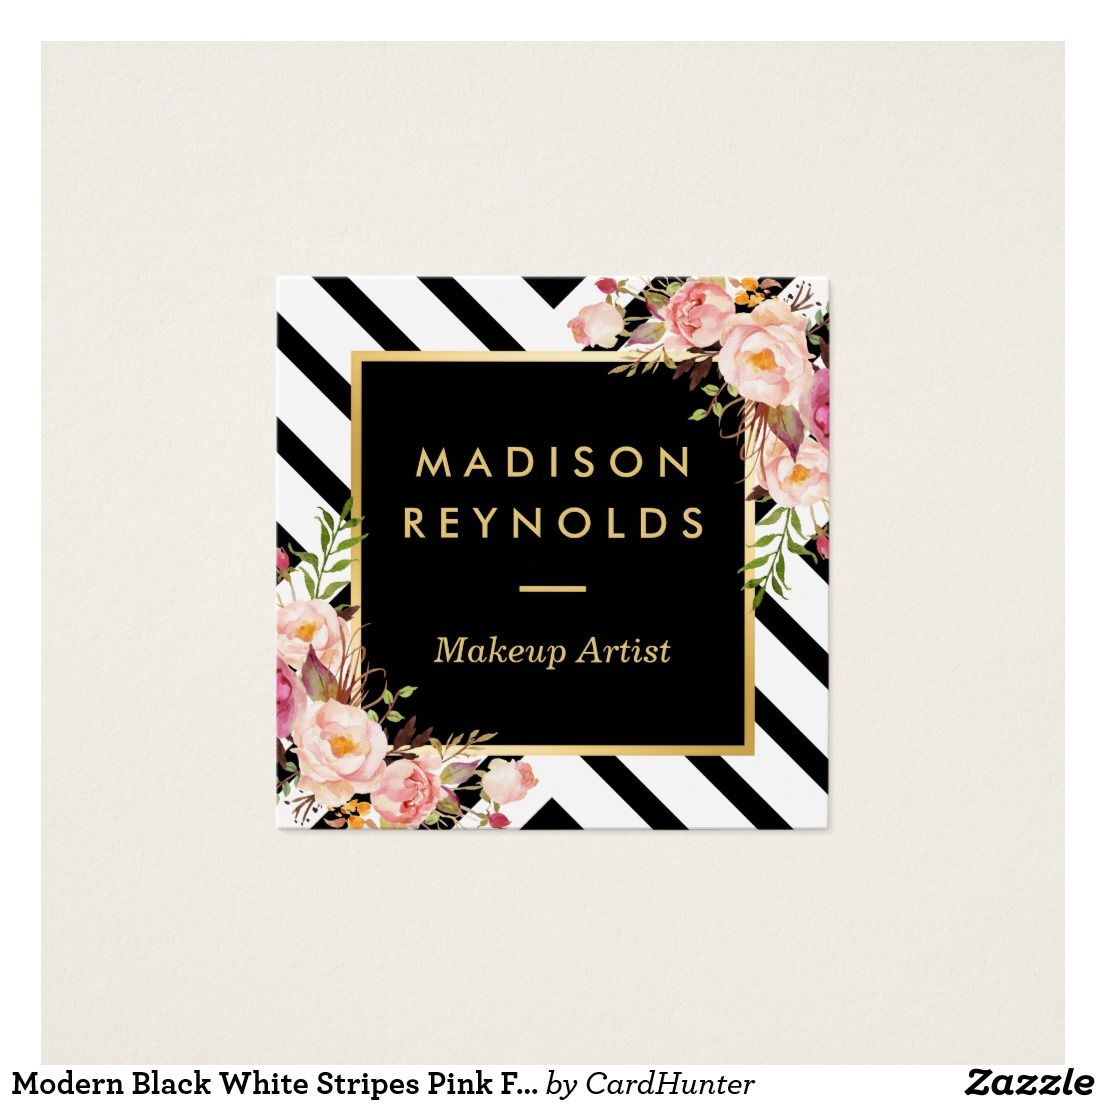 Modern Black White Stripes Pink Floral Gold Frame Square Business